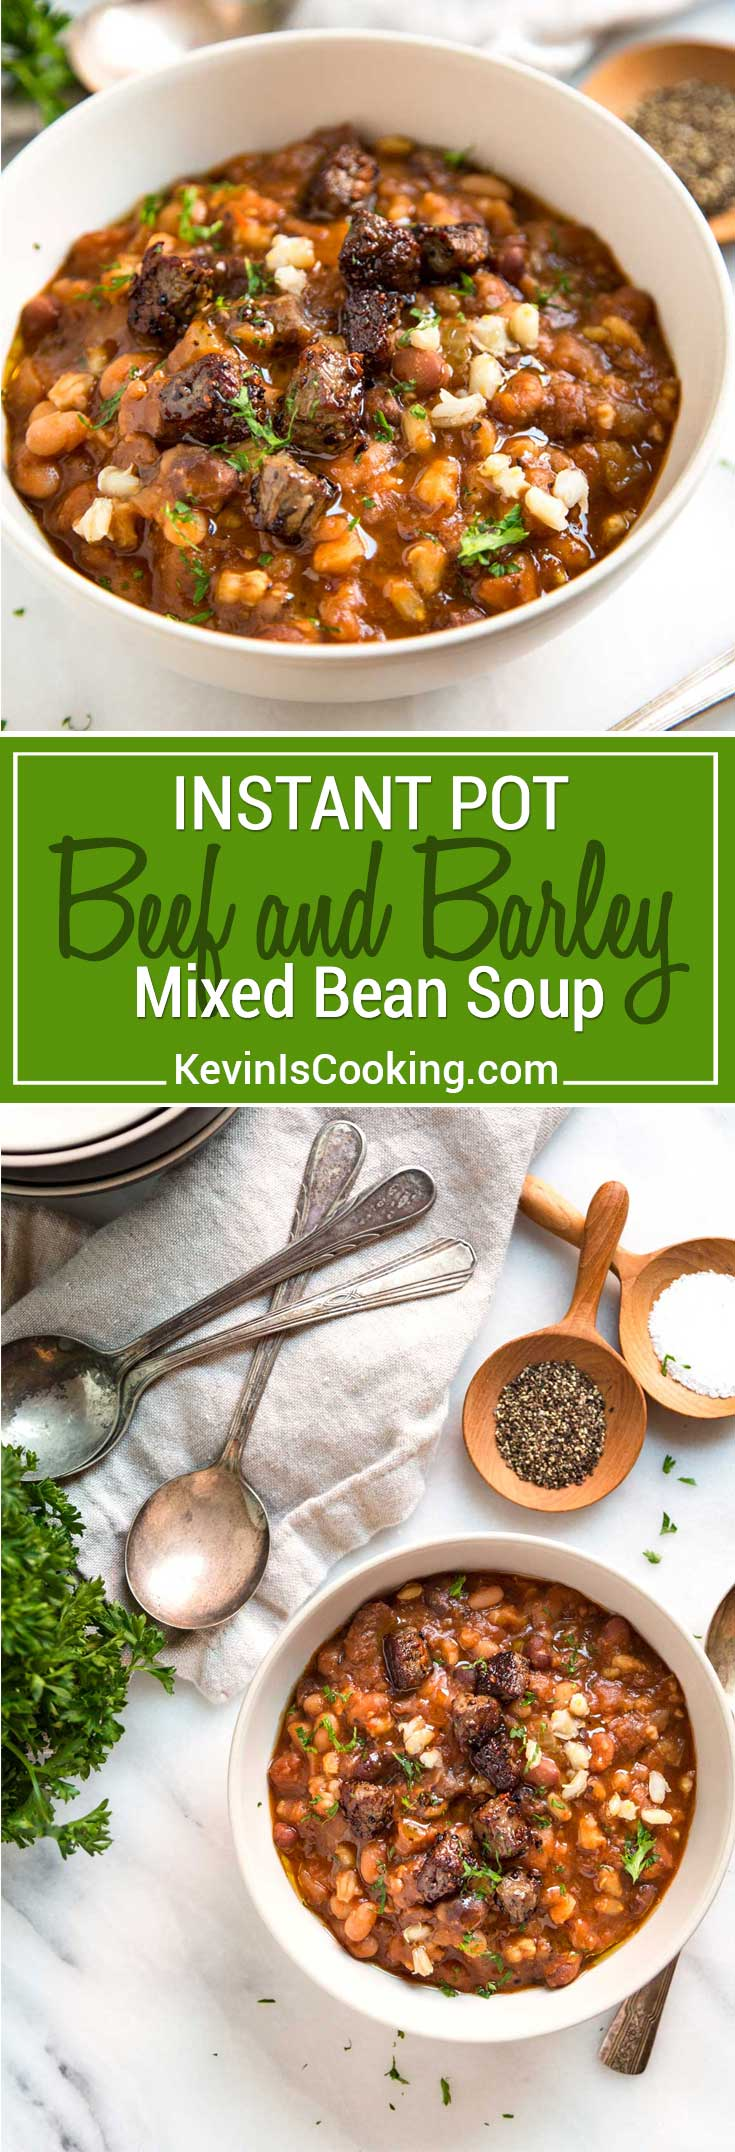 This Beef and Barley Soup has Montreal seasoned beef seared and caramelized before added to a Dutch oven or Instant pot with mixed beans and barley. So good!